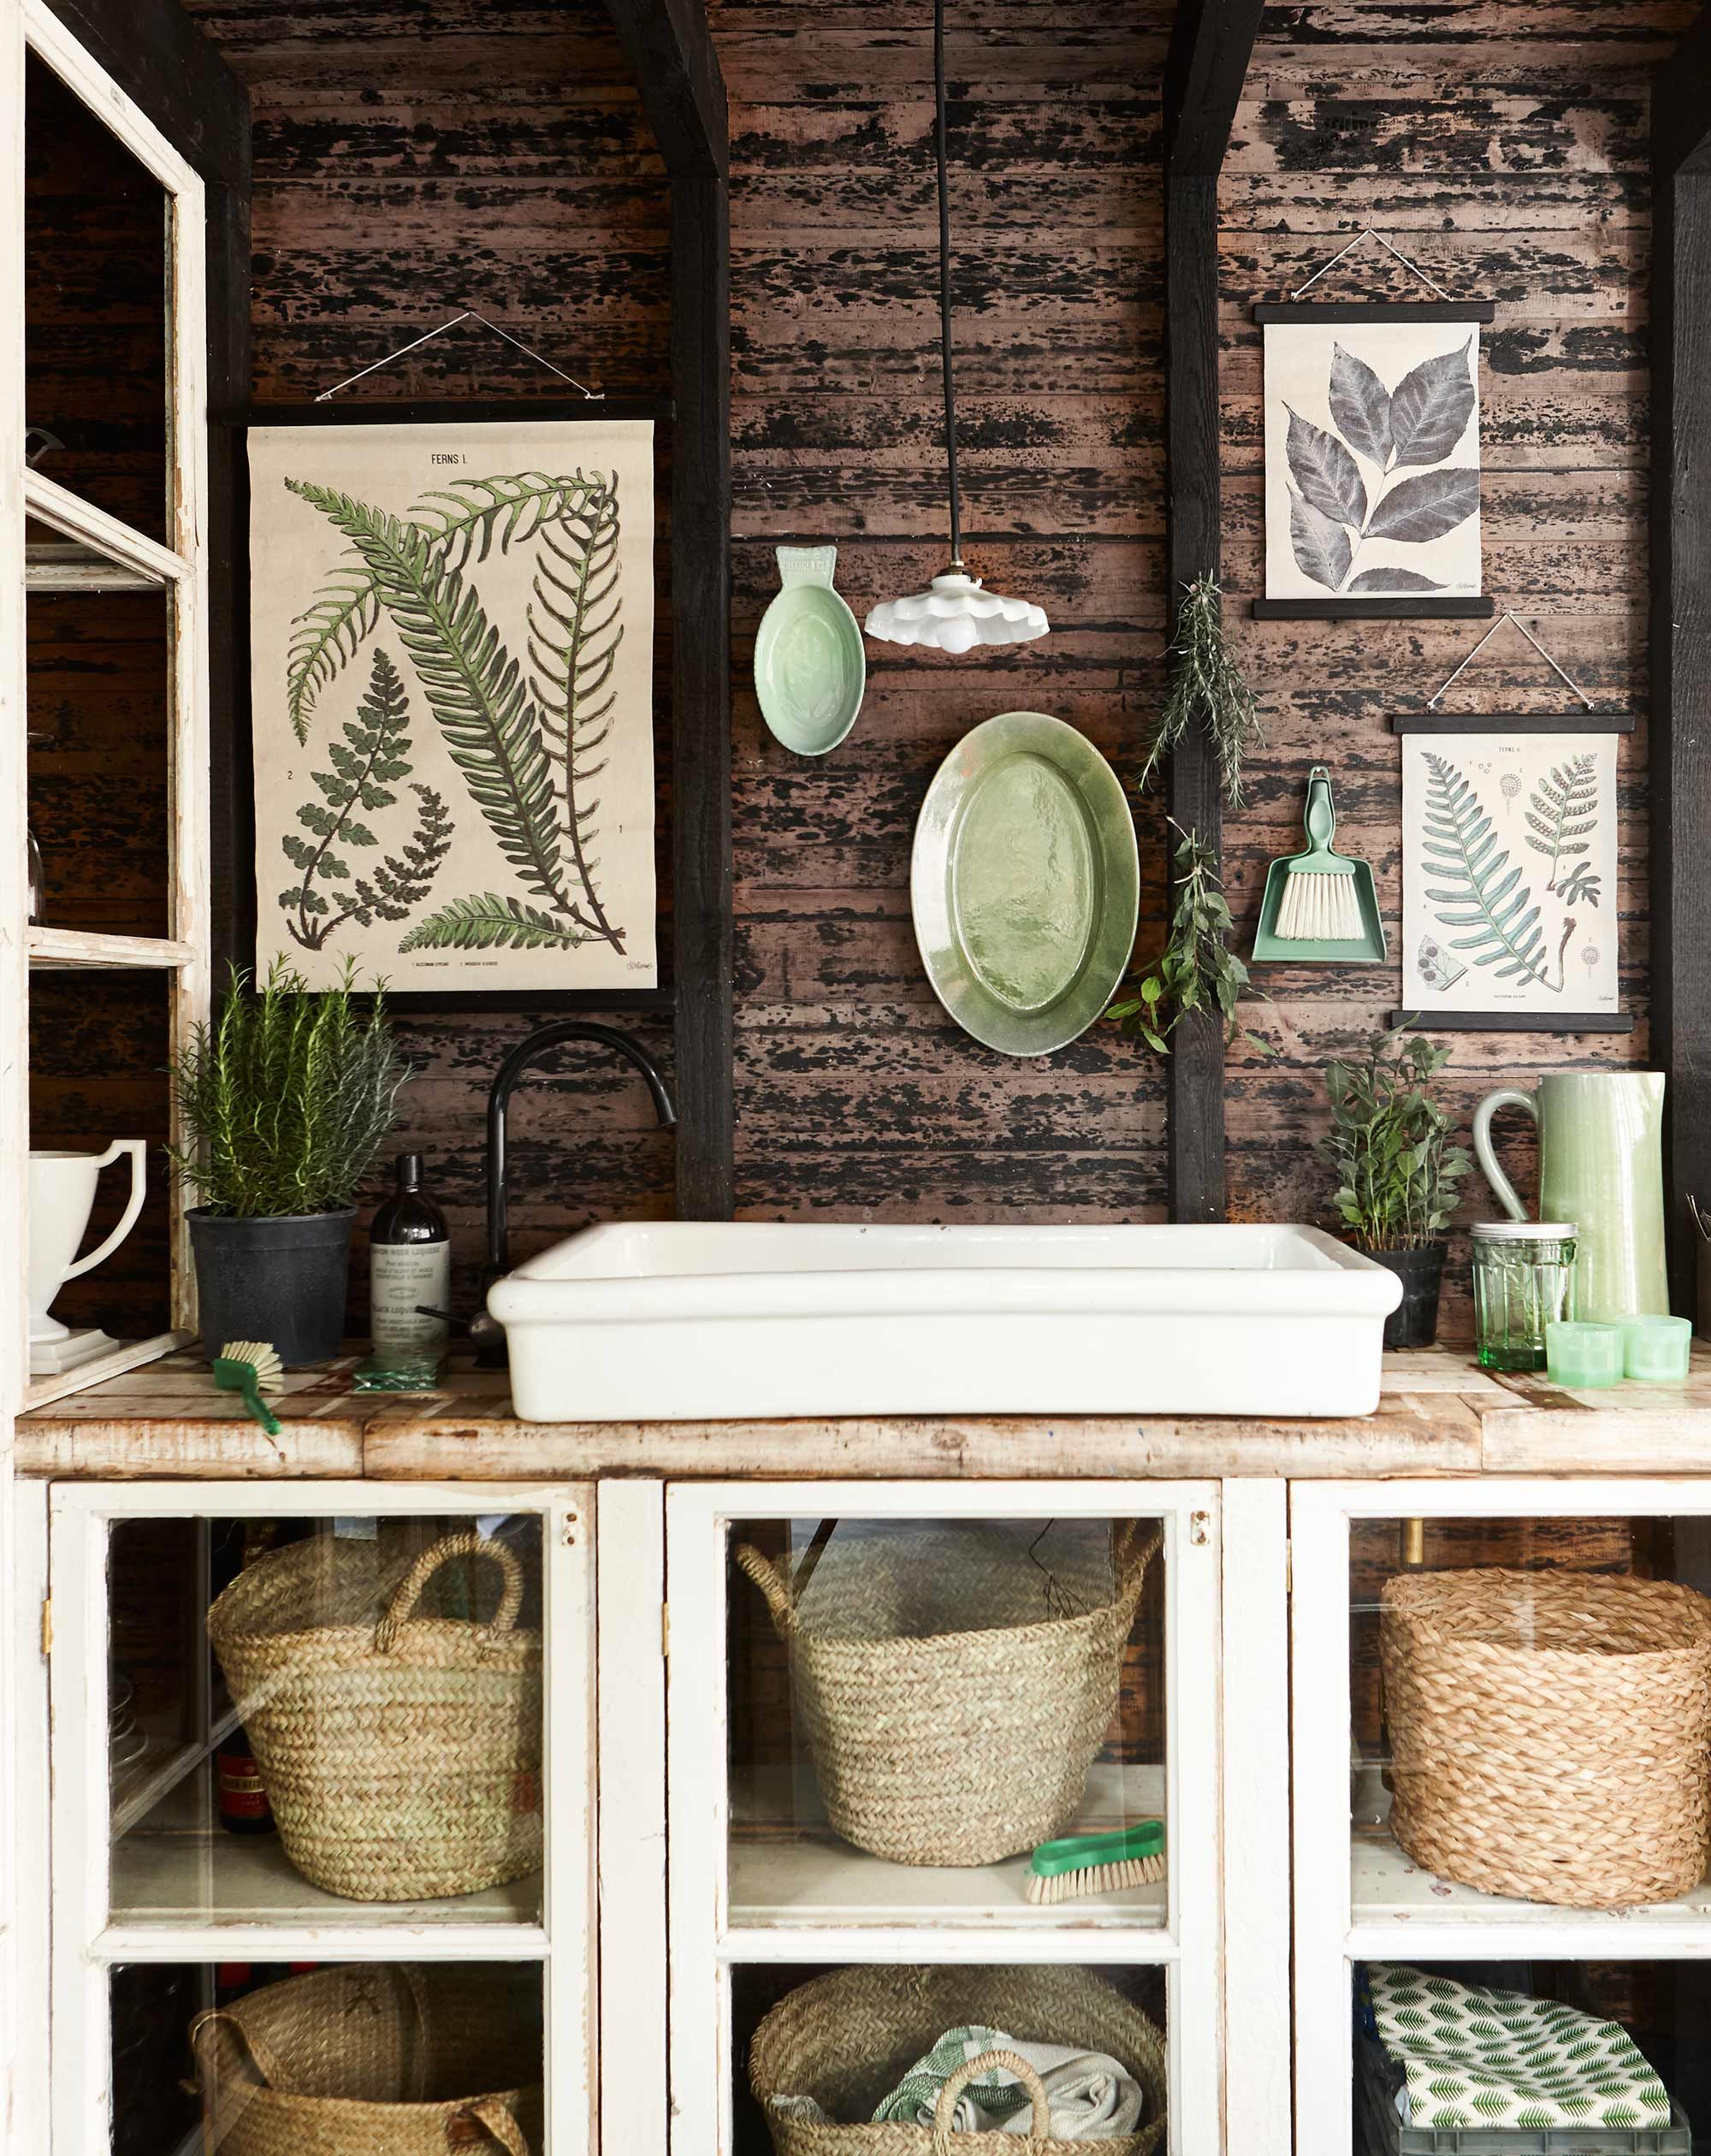 Ordinaire Groene Keuken. Interior DecoratingGreen ...